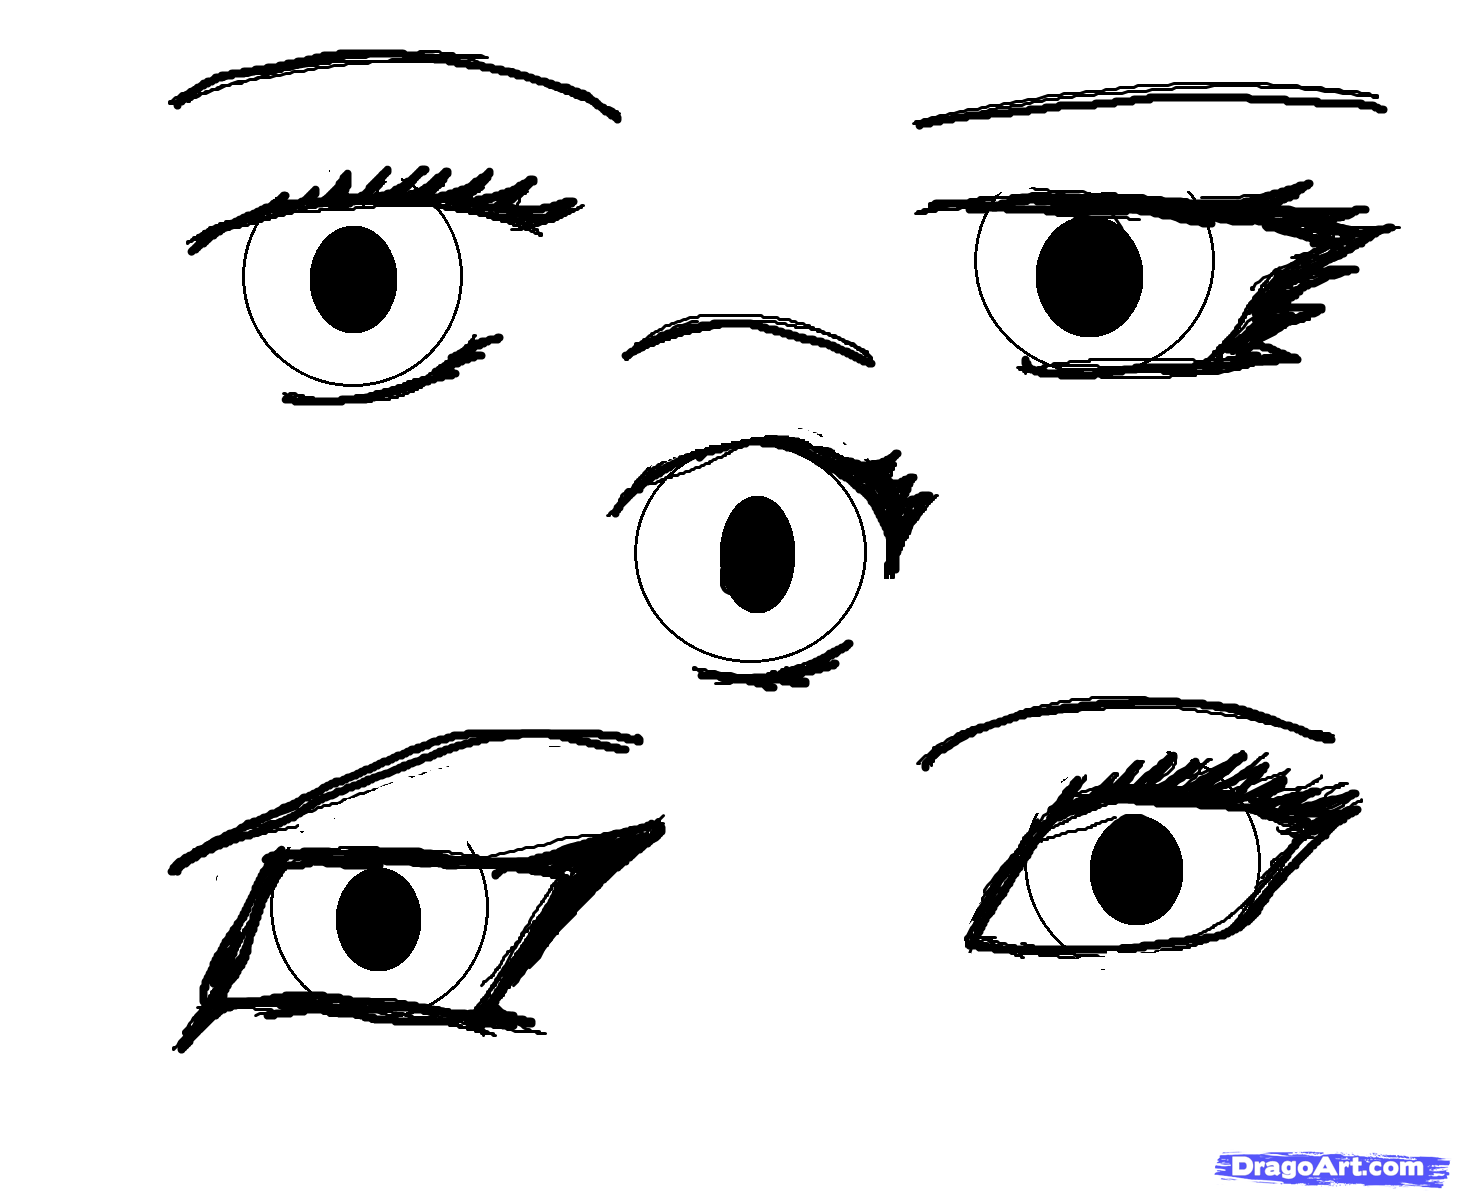 How To Draw Manga Eyes Step By Step Anime Eyes Anime Draw Japanese Anime Draw Manga Free Online Drawing Tutorial Added Manga Eyes Manga Drawing Drawings